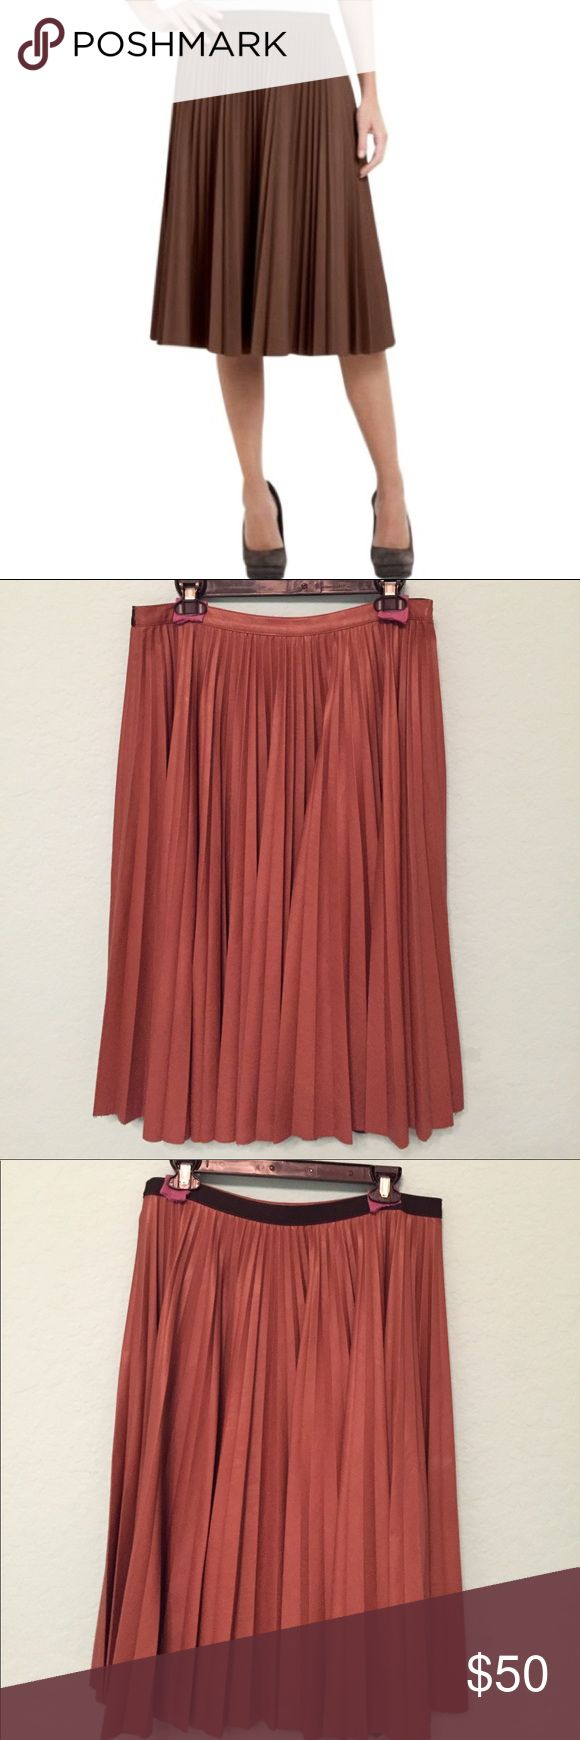 """BCBG MAX AZRIA Elsa pleated vegan leather skirt Toffee color vegan leather pleated skirt. Gentely loved. No major stains or rips. Professionally dry cleaned. Elastic waistband on the back. Length is approximately 27"""". BCBGMaxAzria Skirts A-Line or Full"""